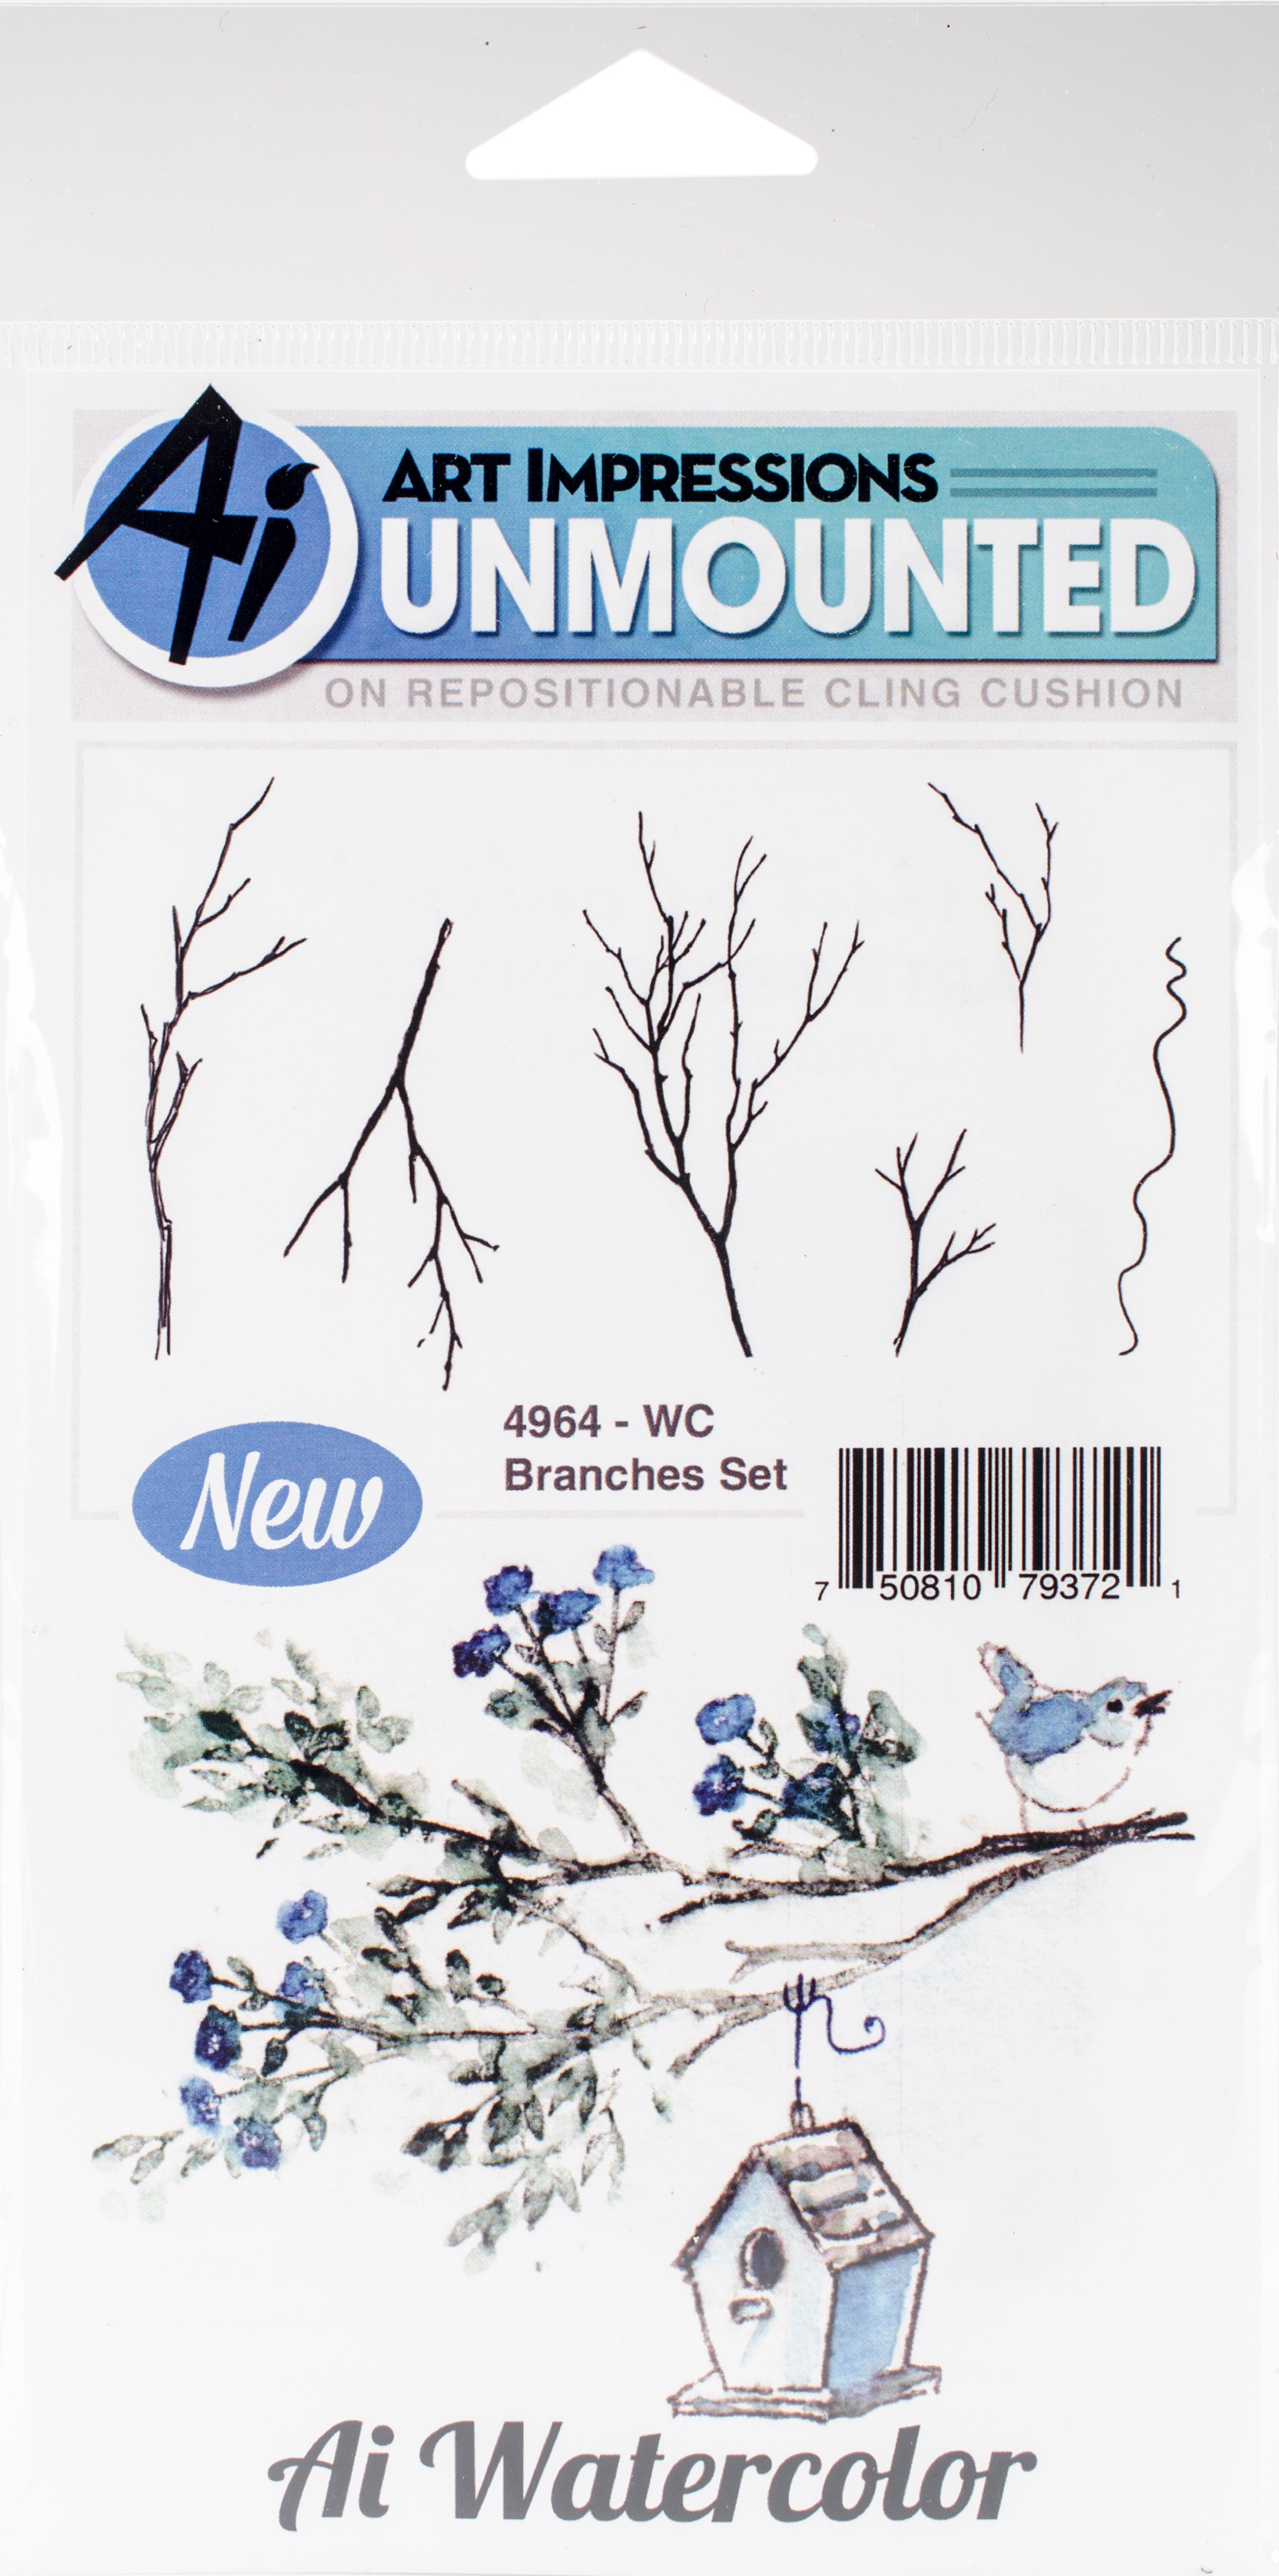 WC Branches Set